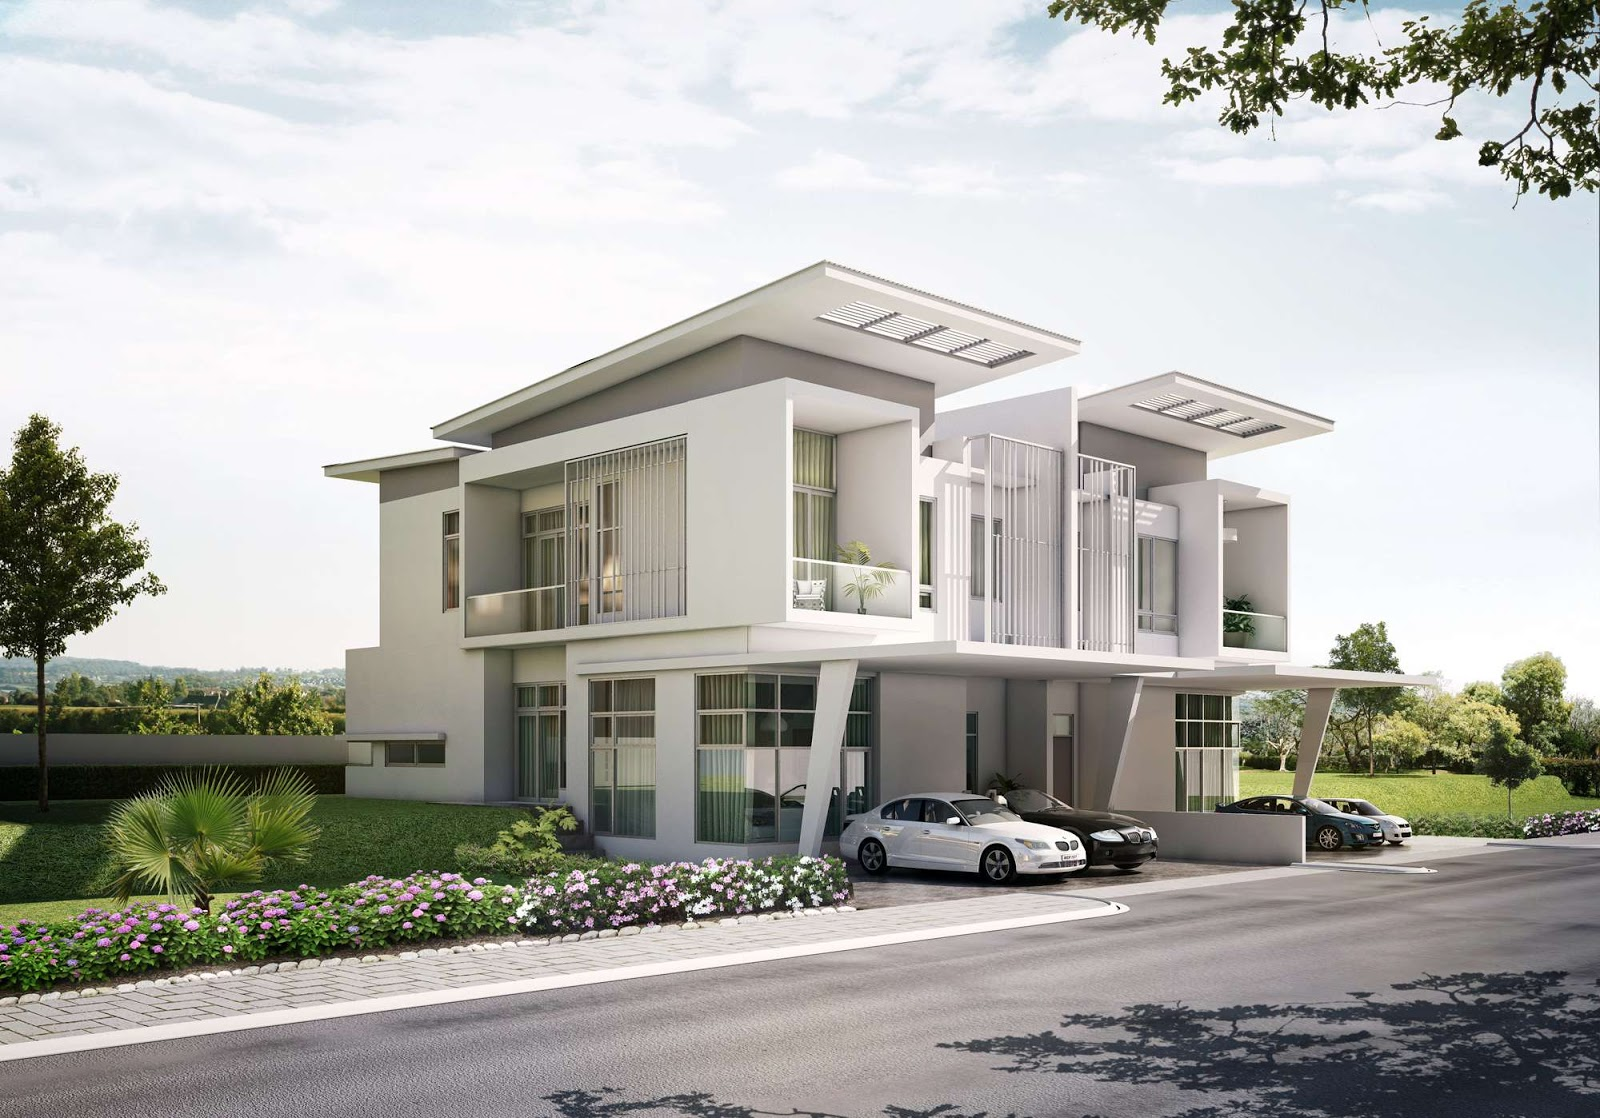 New home designs latest singapore modern homes exterior for Modern house front design